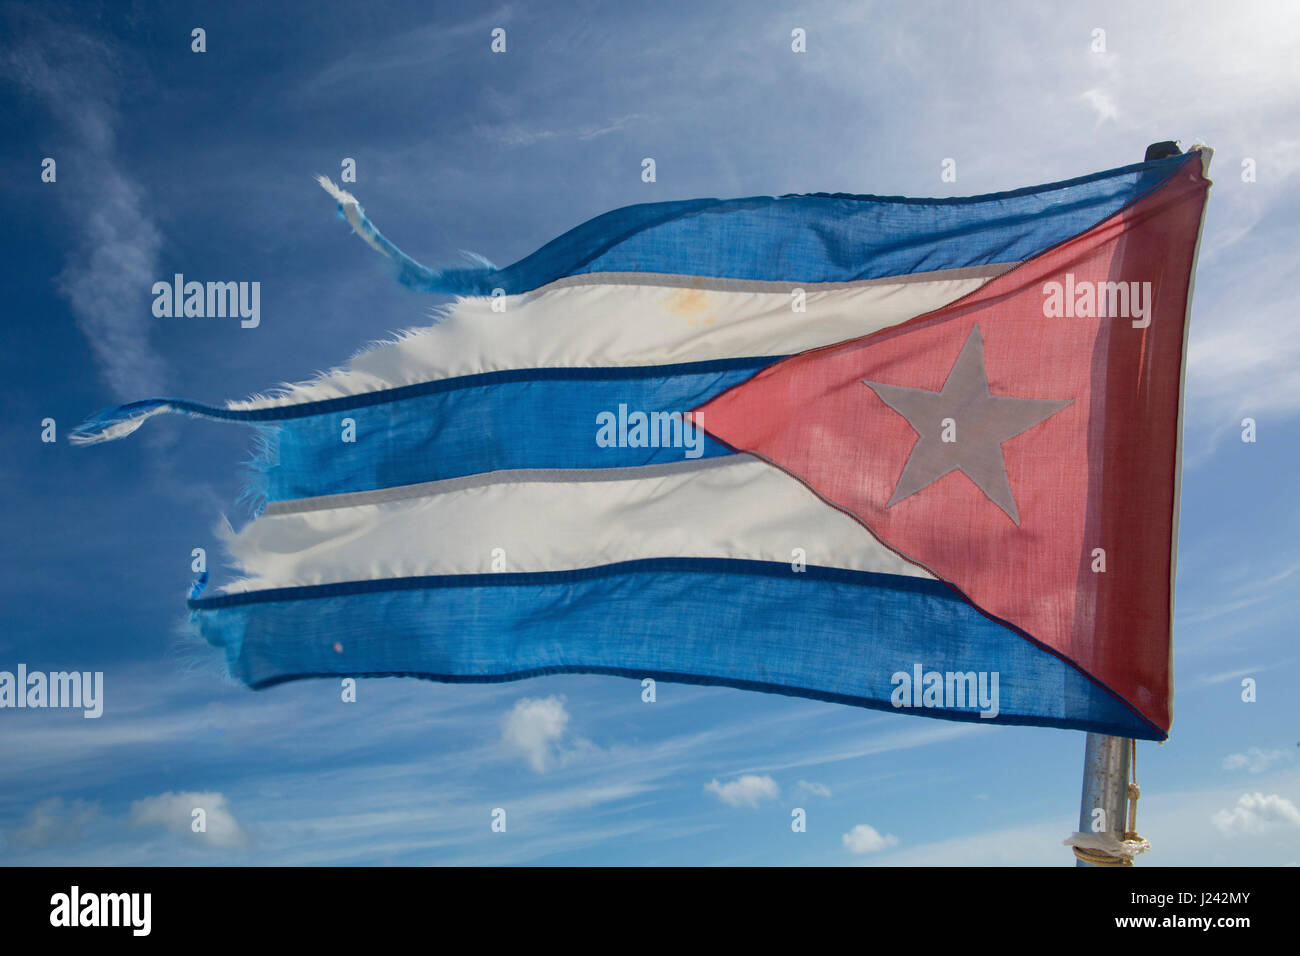 The Flag of Cuba, consisting of five strobes and a red equilateral triangle  with a white five-pointed star. - Stock-Bilder